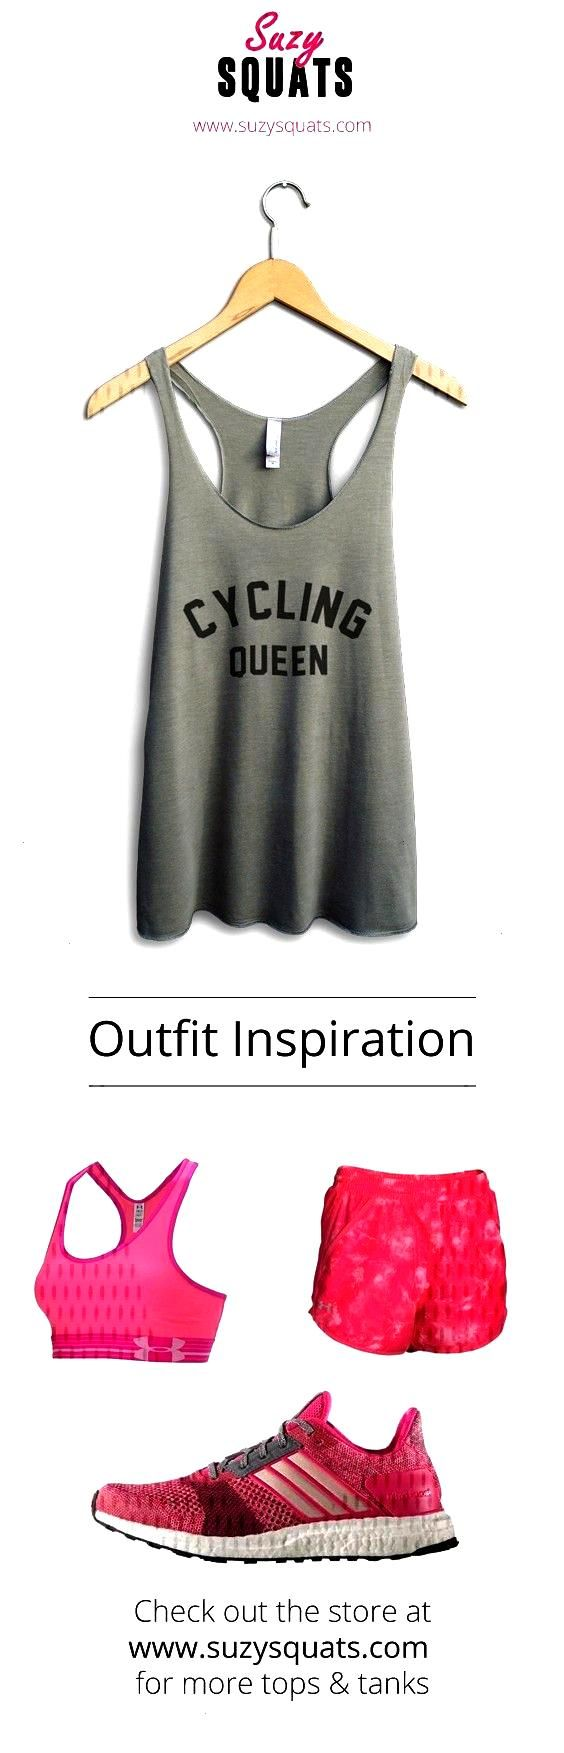 Squats funny cycling tank top, perfect to wear during your next cycle or as a gift for a cyclist fr